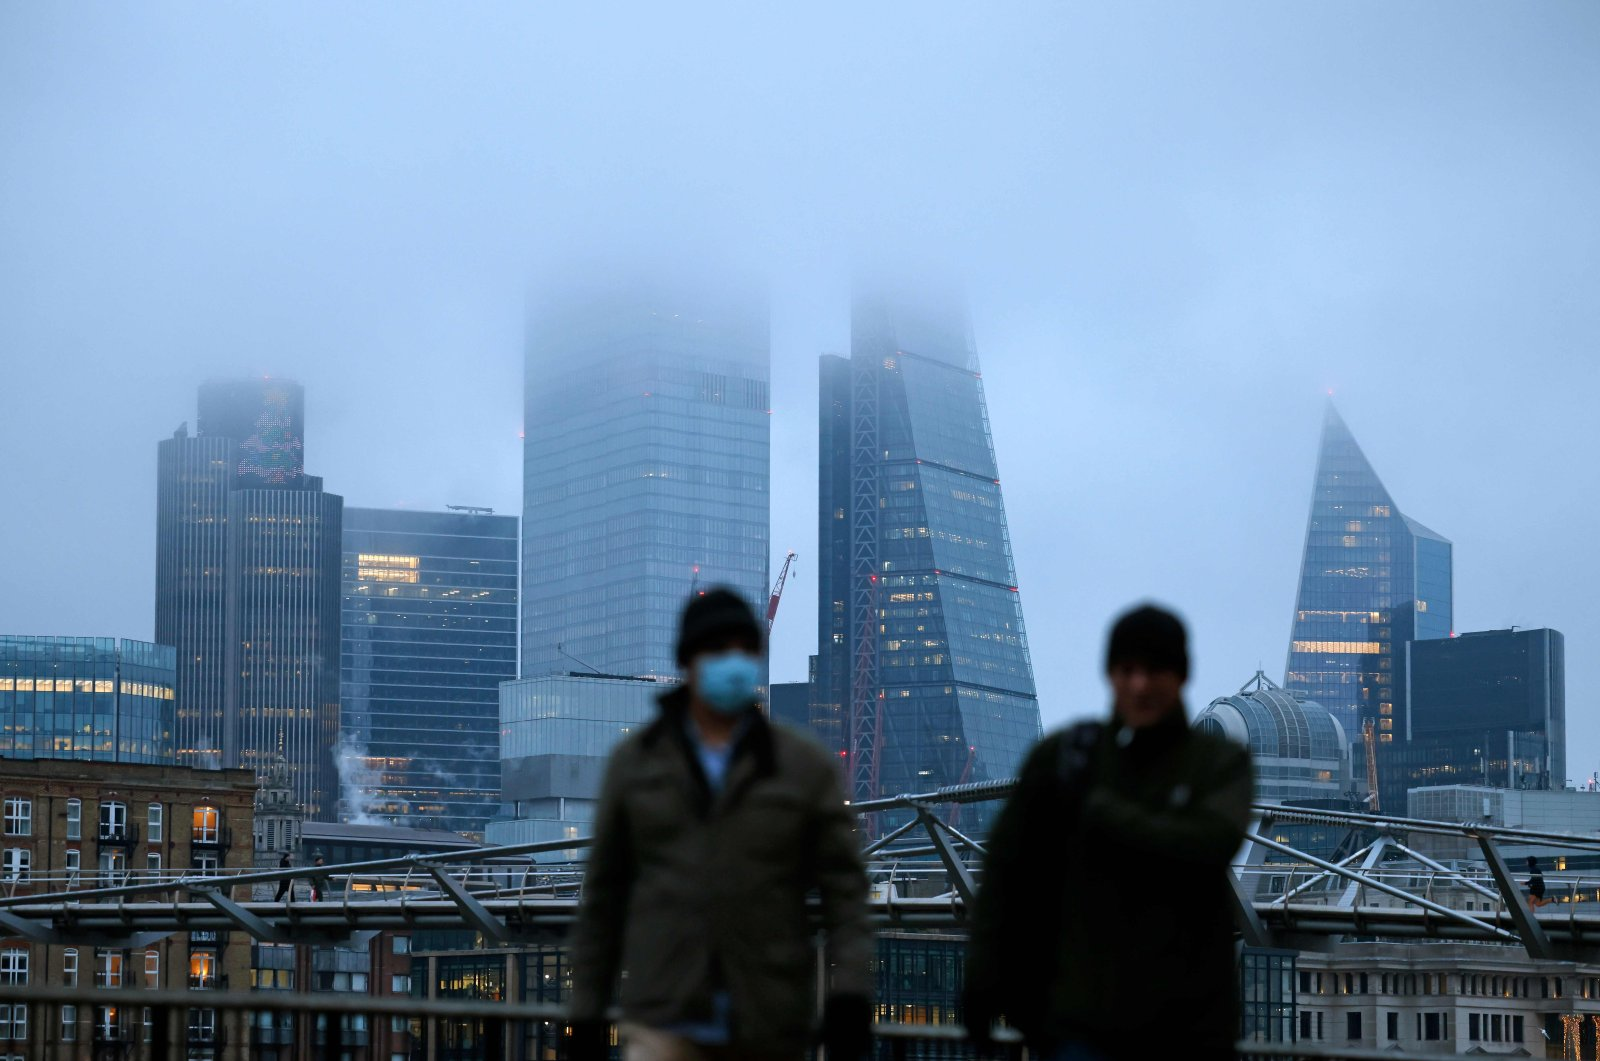 Pedestrians walk on the South Bank as mist covers buildings in the City of London on the bank holiday, Dec. 28, 2020 (AFP Photo)